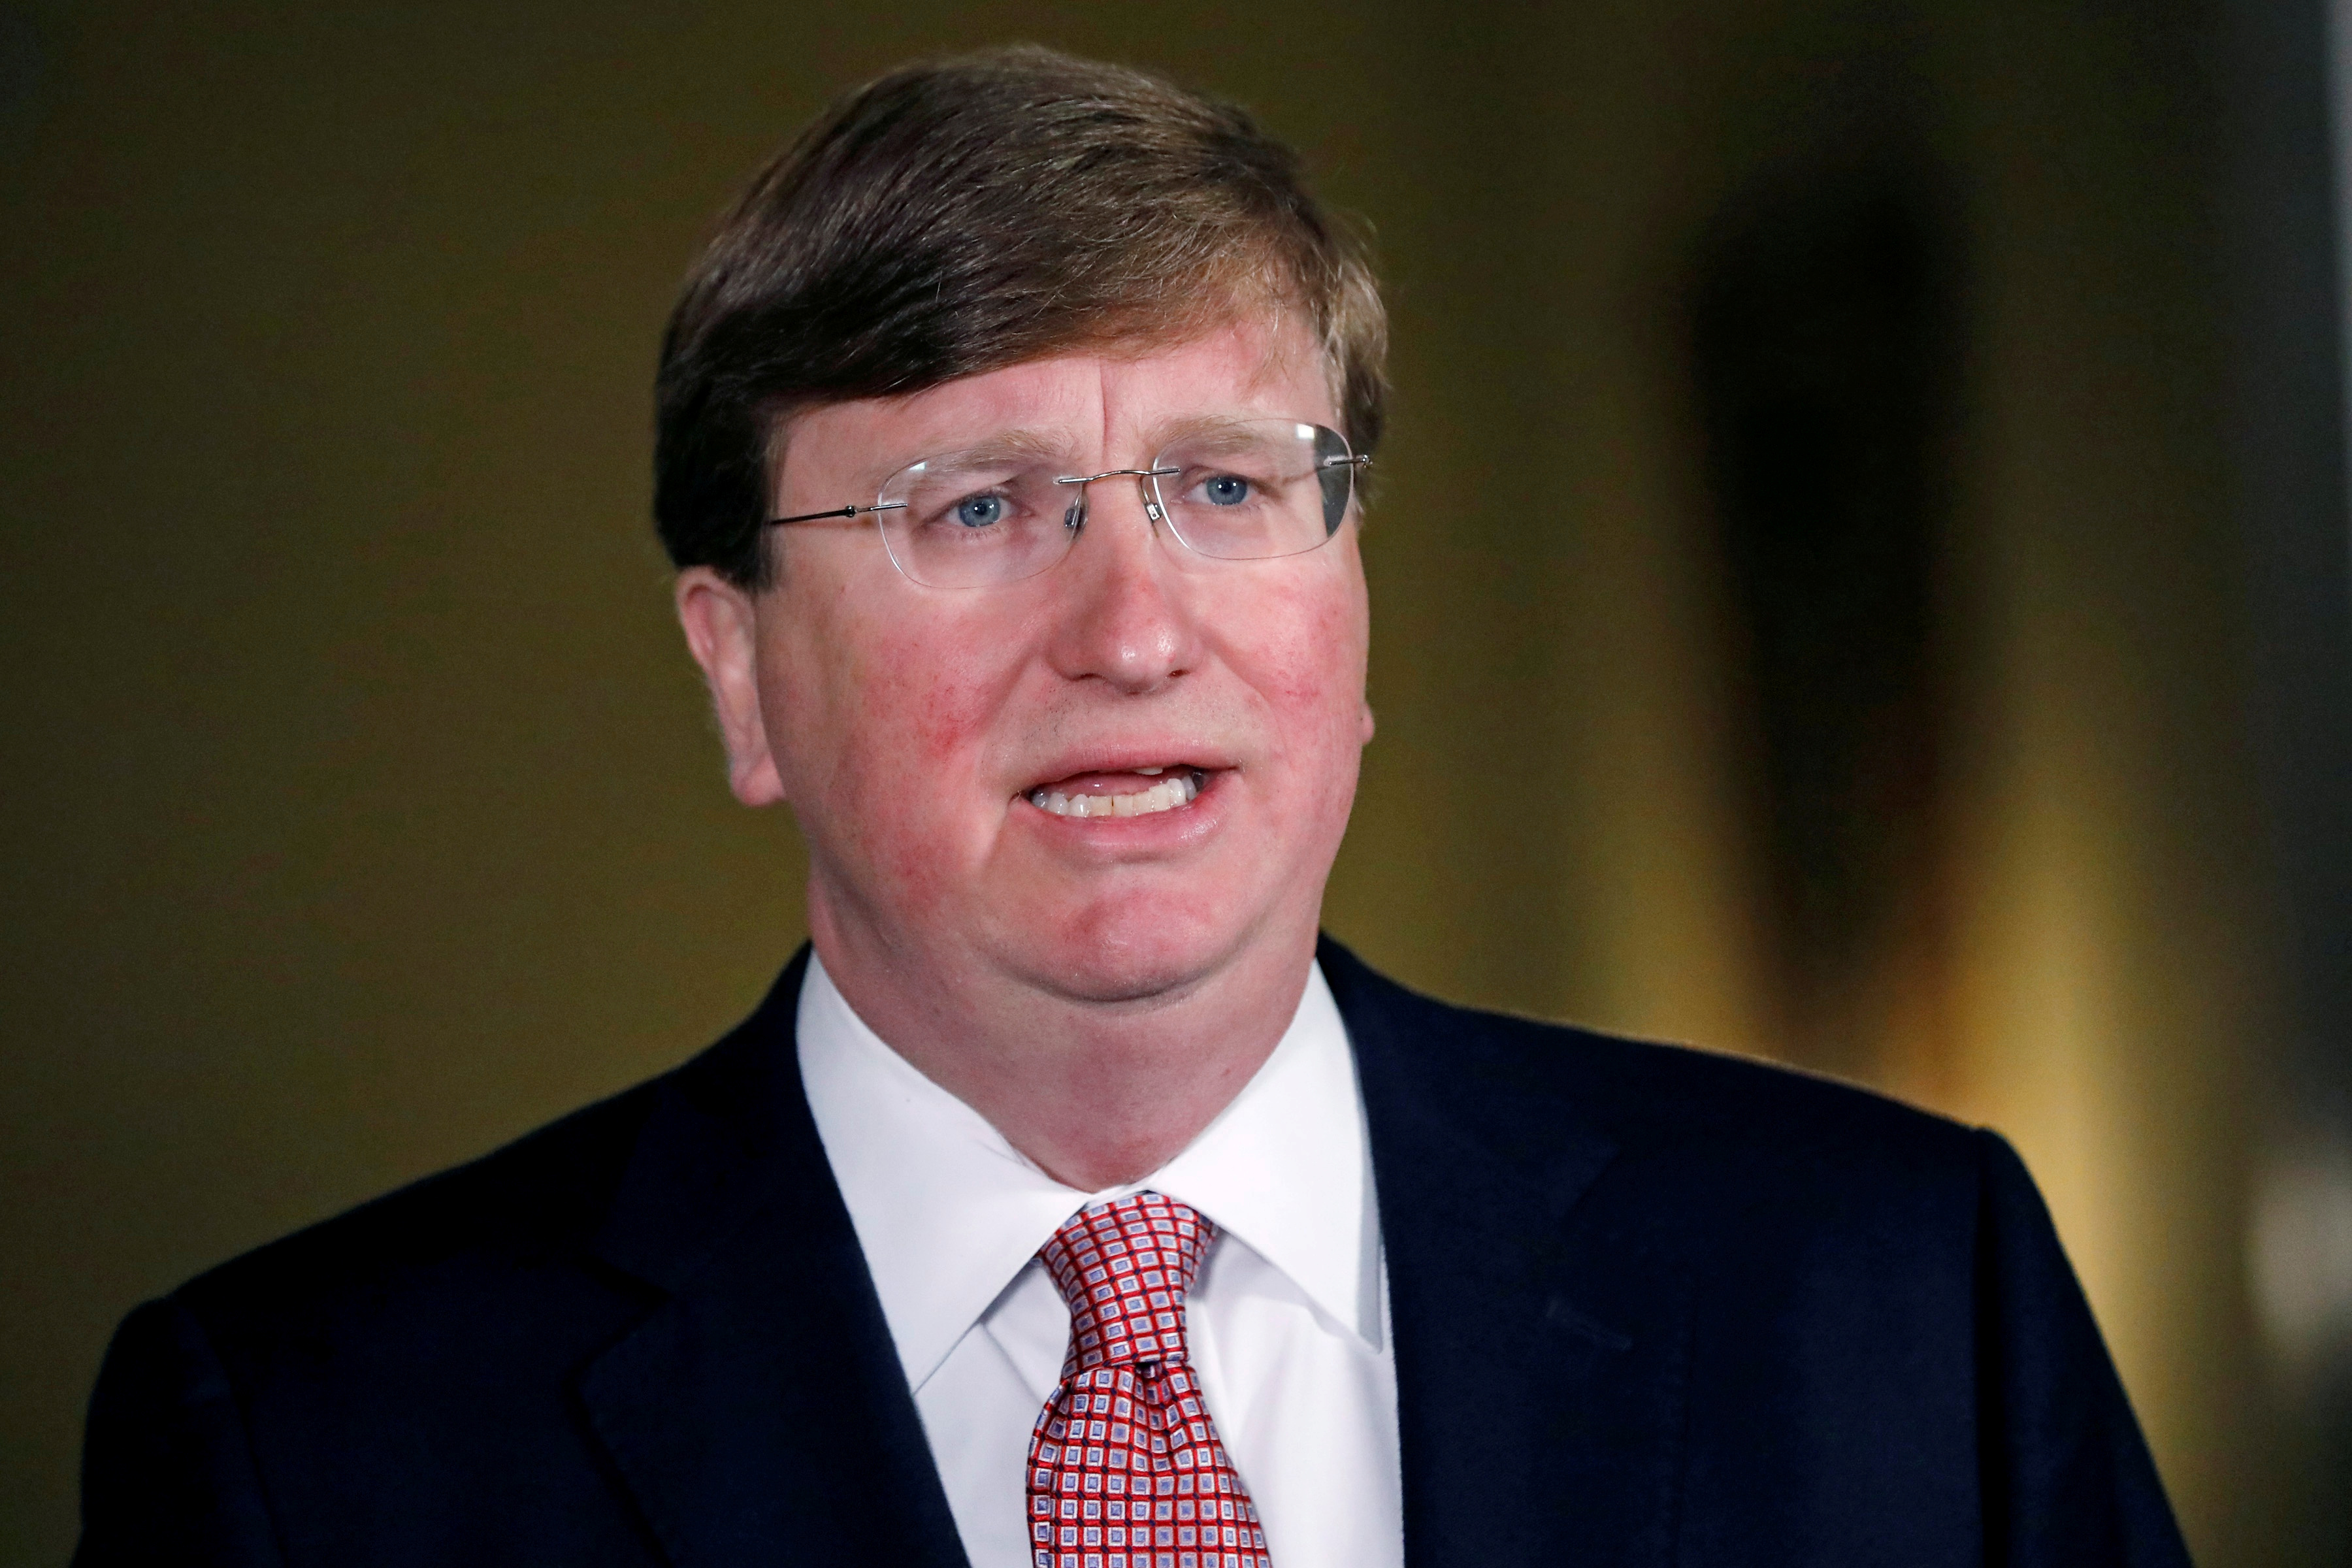 Mississippi Gov. Tate Reeves delivers a televised address prior to signing a bill retiring the last state flag in the United States with the Confederate battle emblem, during a ceremony at the Governor's Mansion in Jackson, Mississippi, U.S. June 30, 2020.  Rogelio V. Solis/Pool via REUTERS